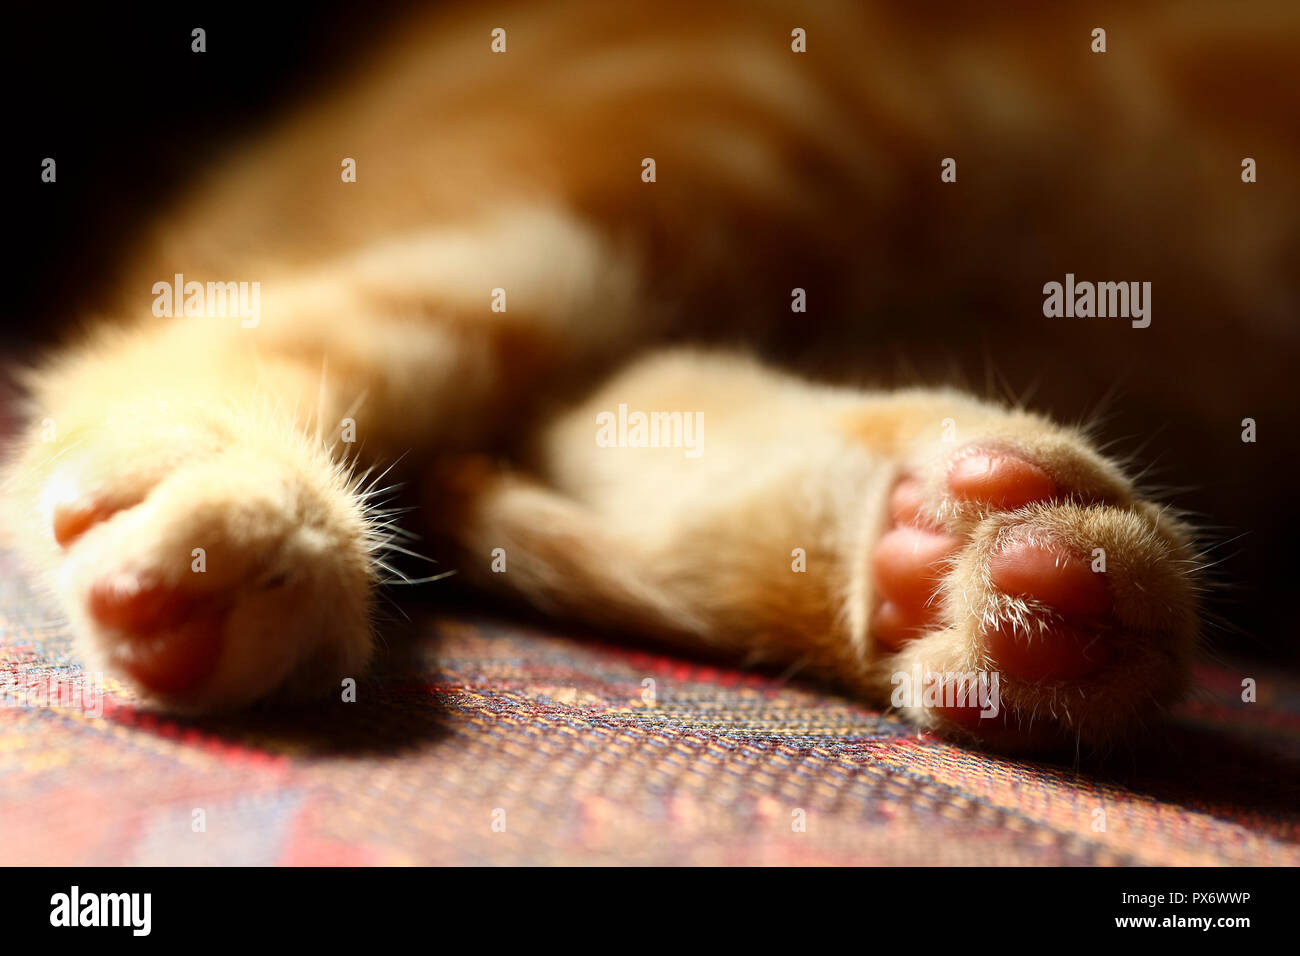 Close up of a mackeral tabby cats back feet in soft focus - Stock Image